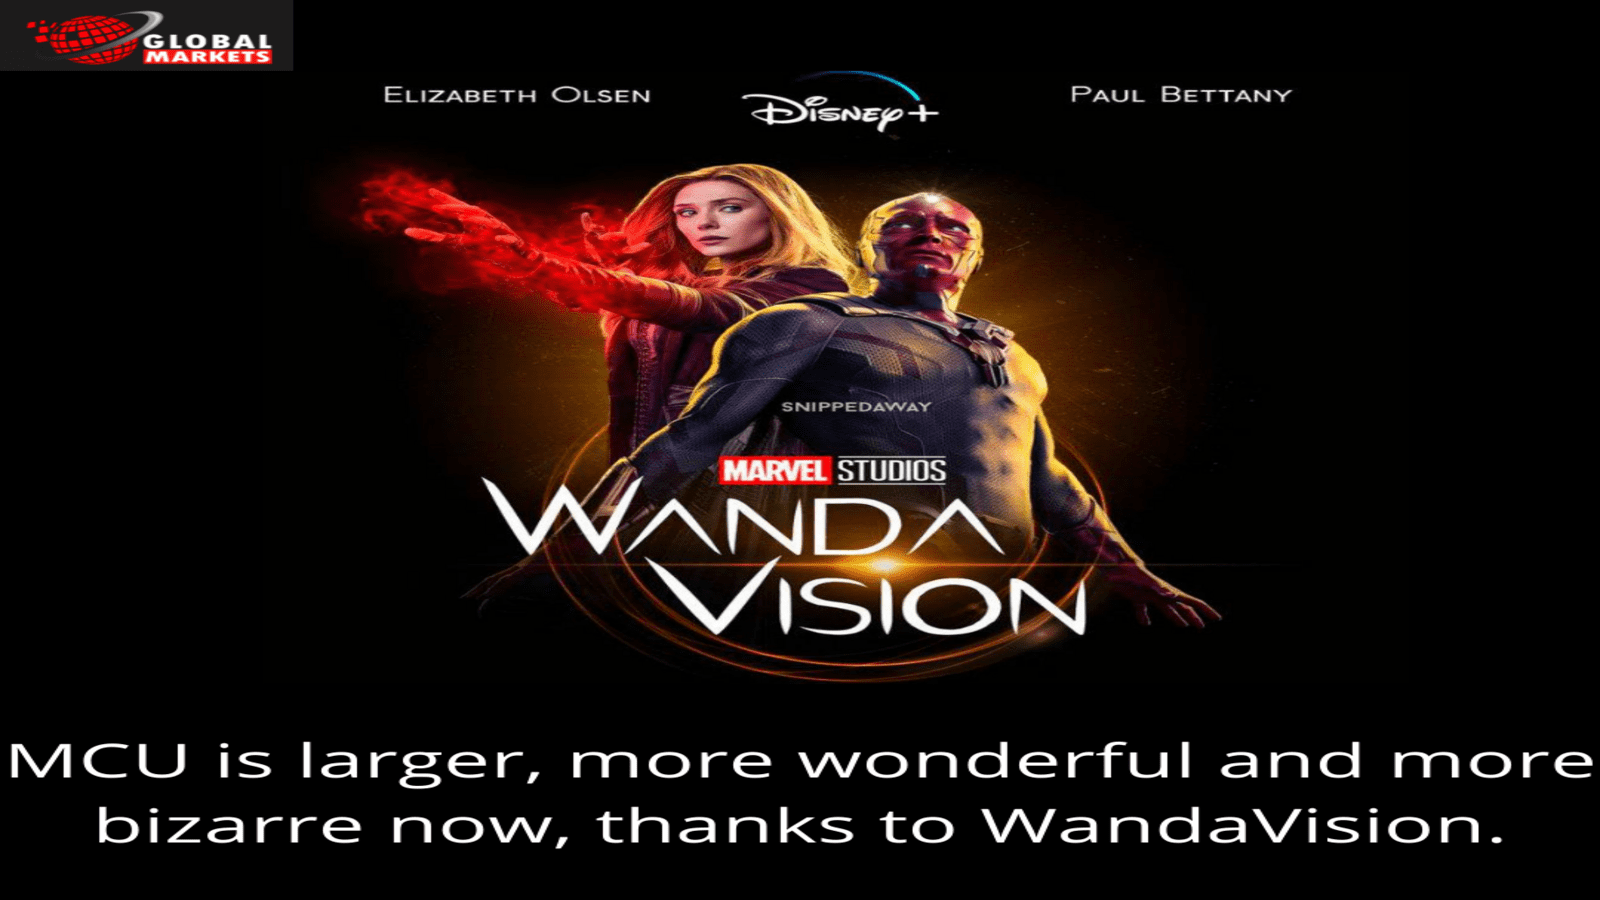 MCU is larger, more wonderful and more bizarre now, thanks to WandaVision.